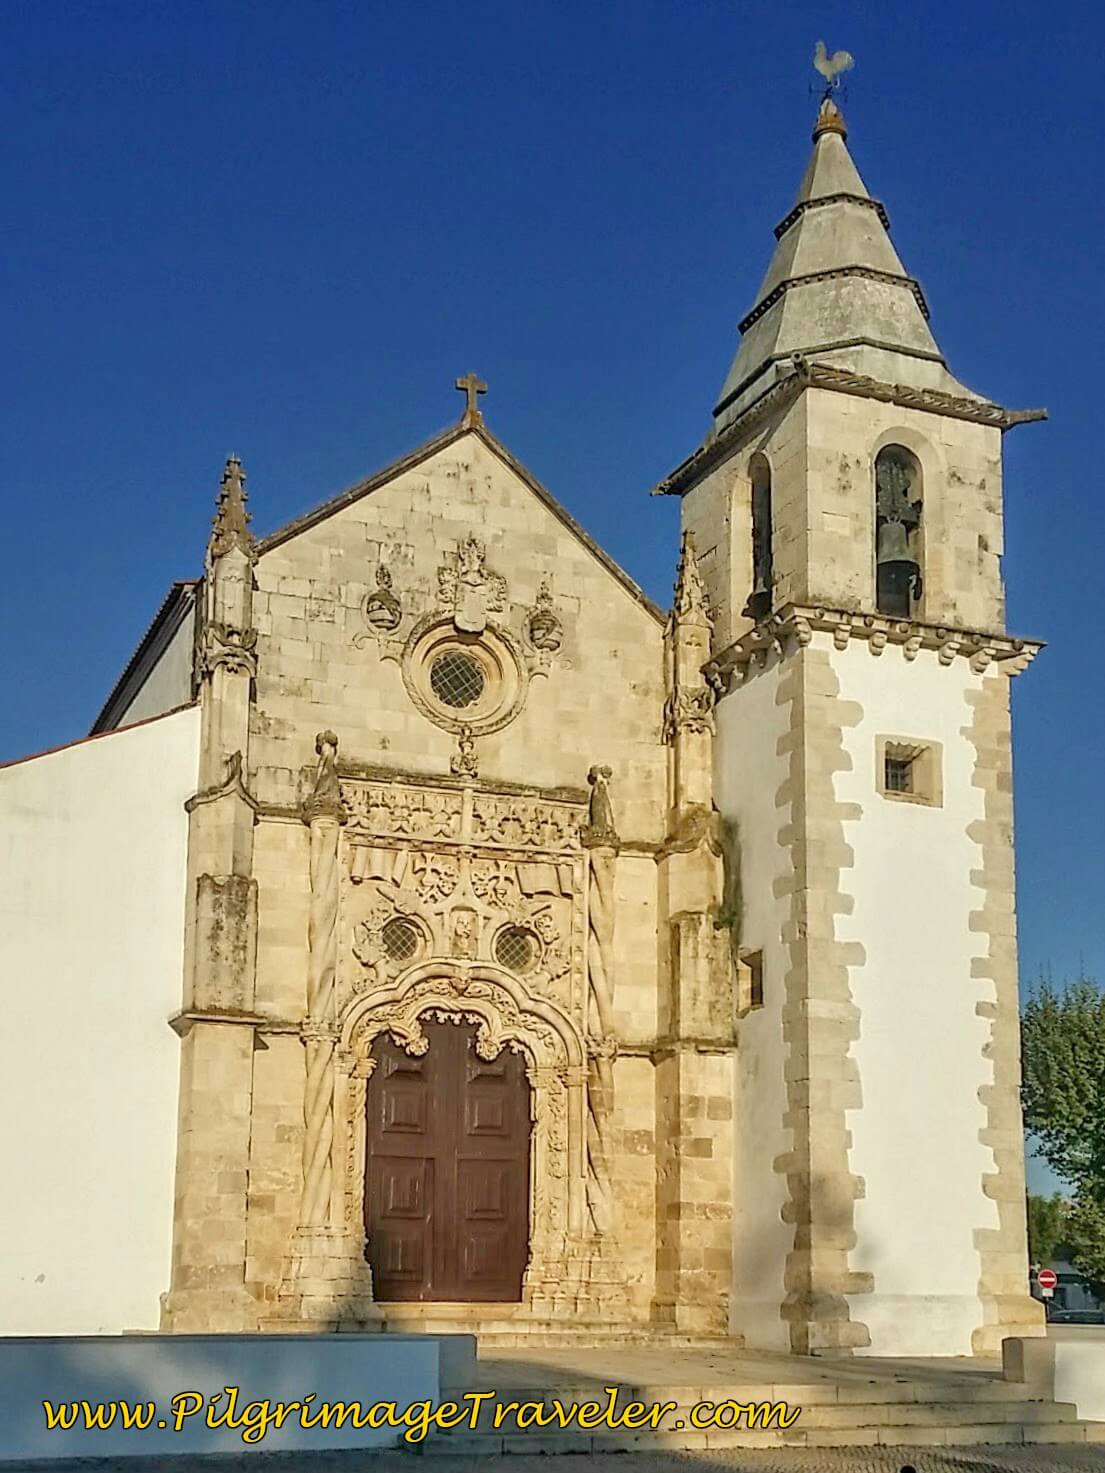 The Igreja Matriz do Golegã